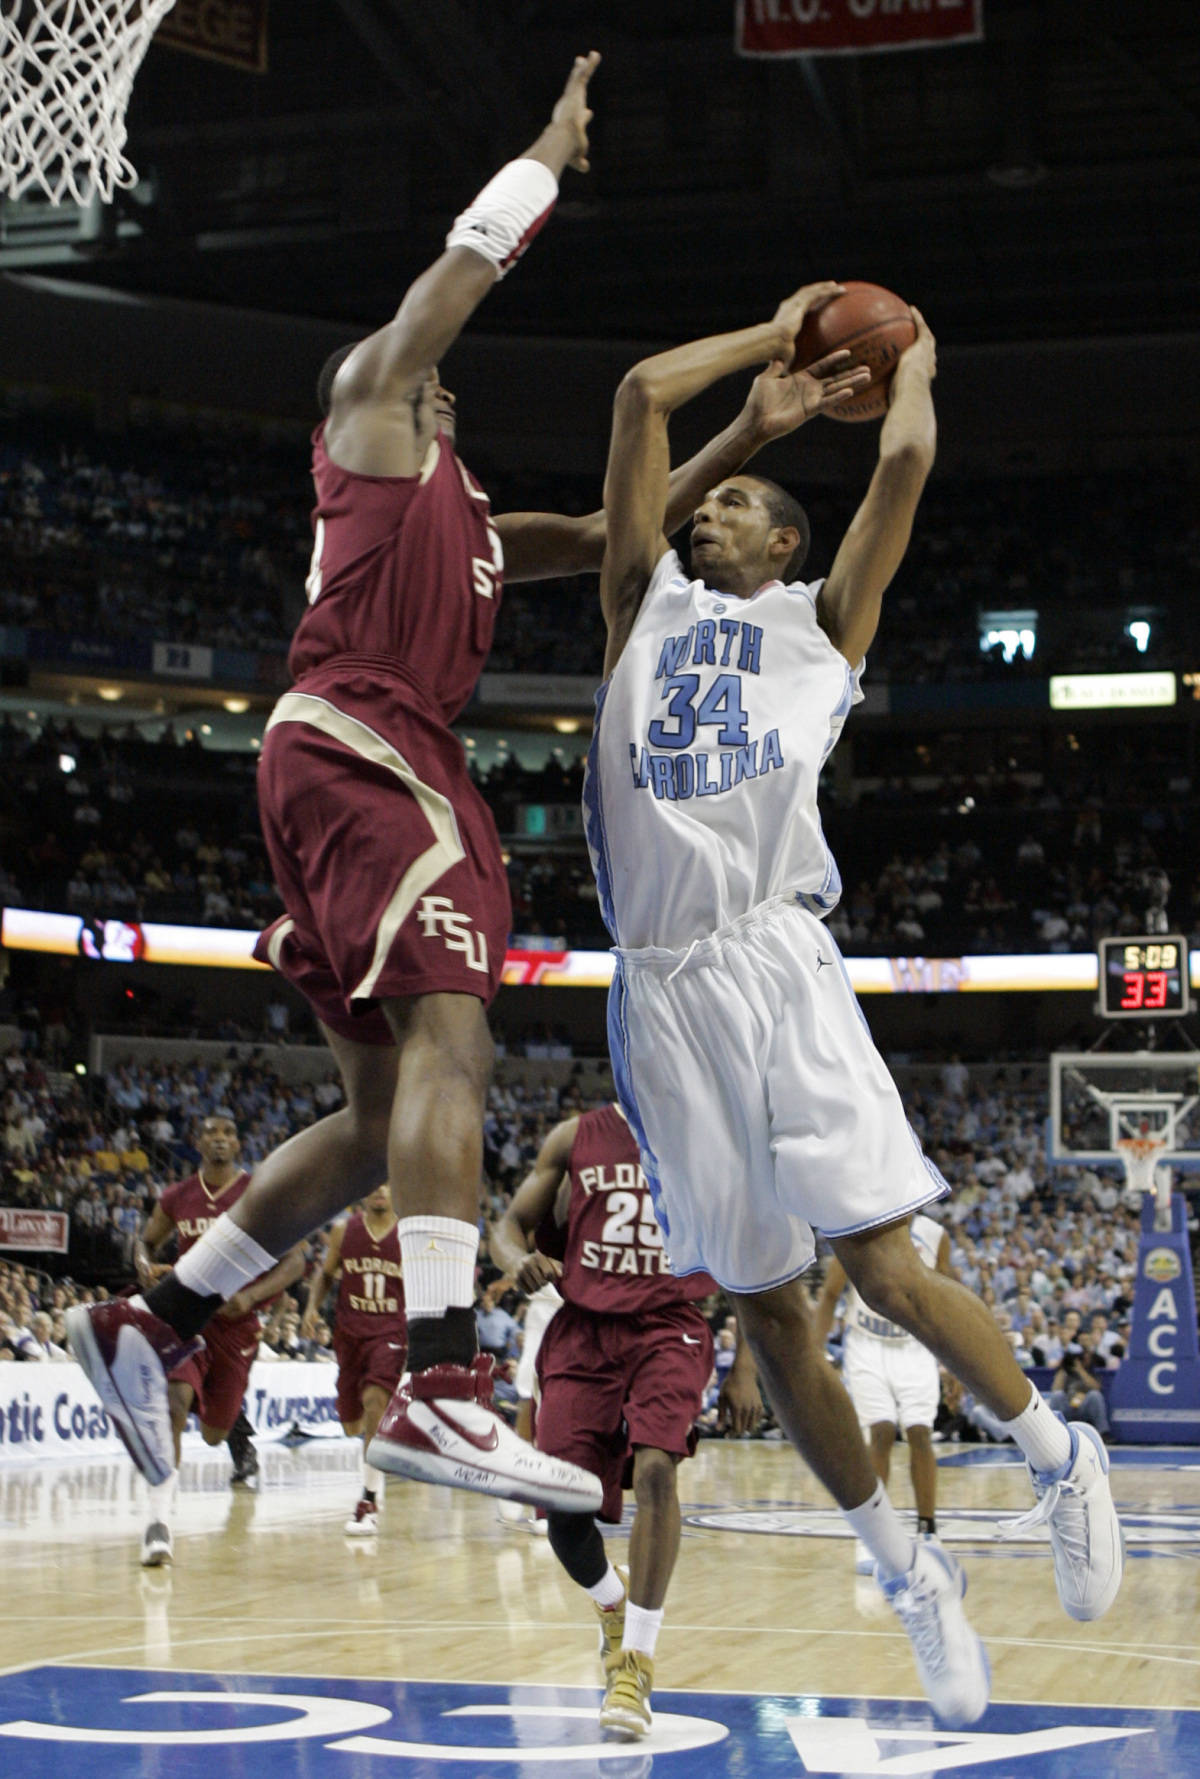 Florida State's Al Thornton, left, leaps to block a shot by North Carolina's Brandan Wright (34) second round game of the Men's Atlantic Coast Conference basketball tournament in Tampa, Fla., Friday, March 9, 2007. (AP Photo/David J. Phillip)